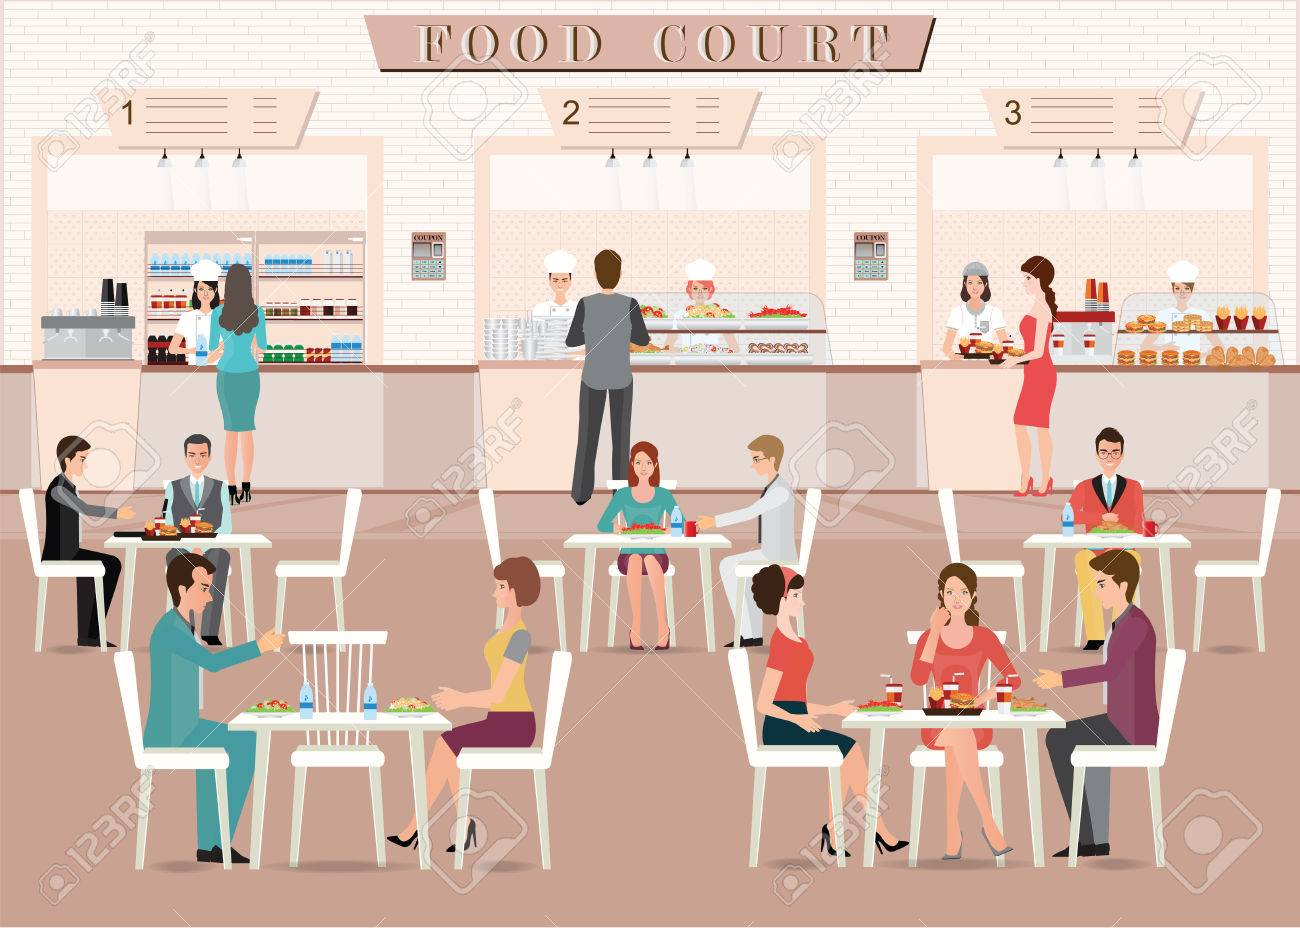 People eating in a food court in a shopping mall, character flat design vector illustration. - 69418292